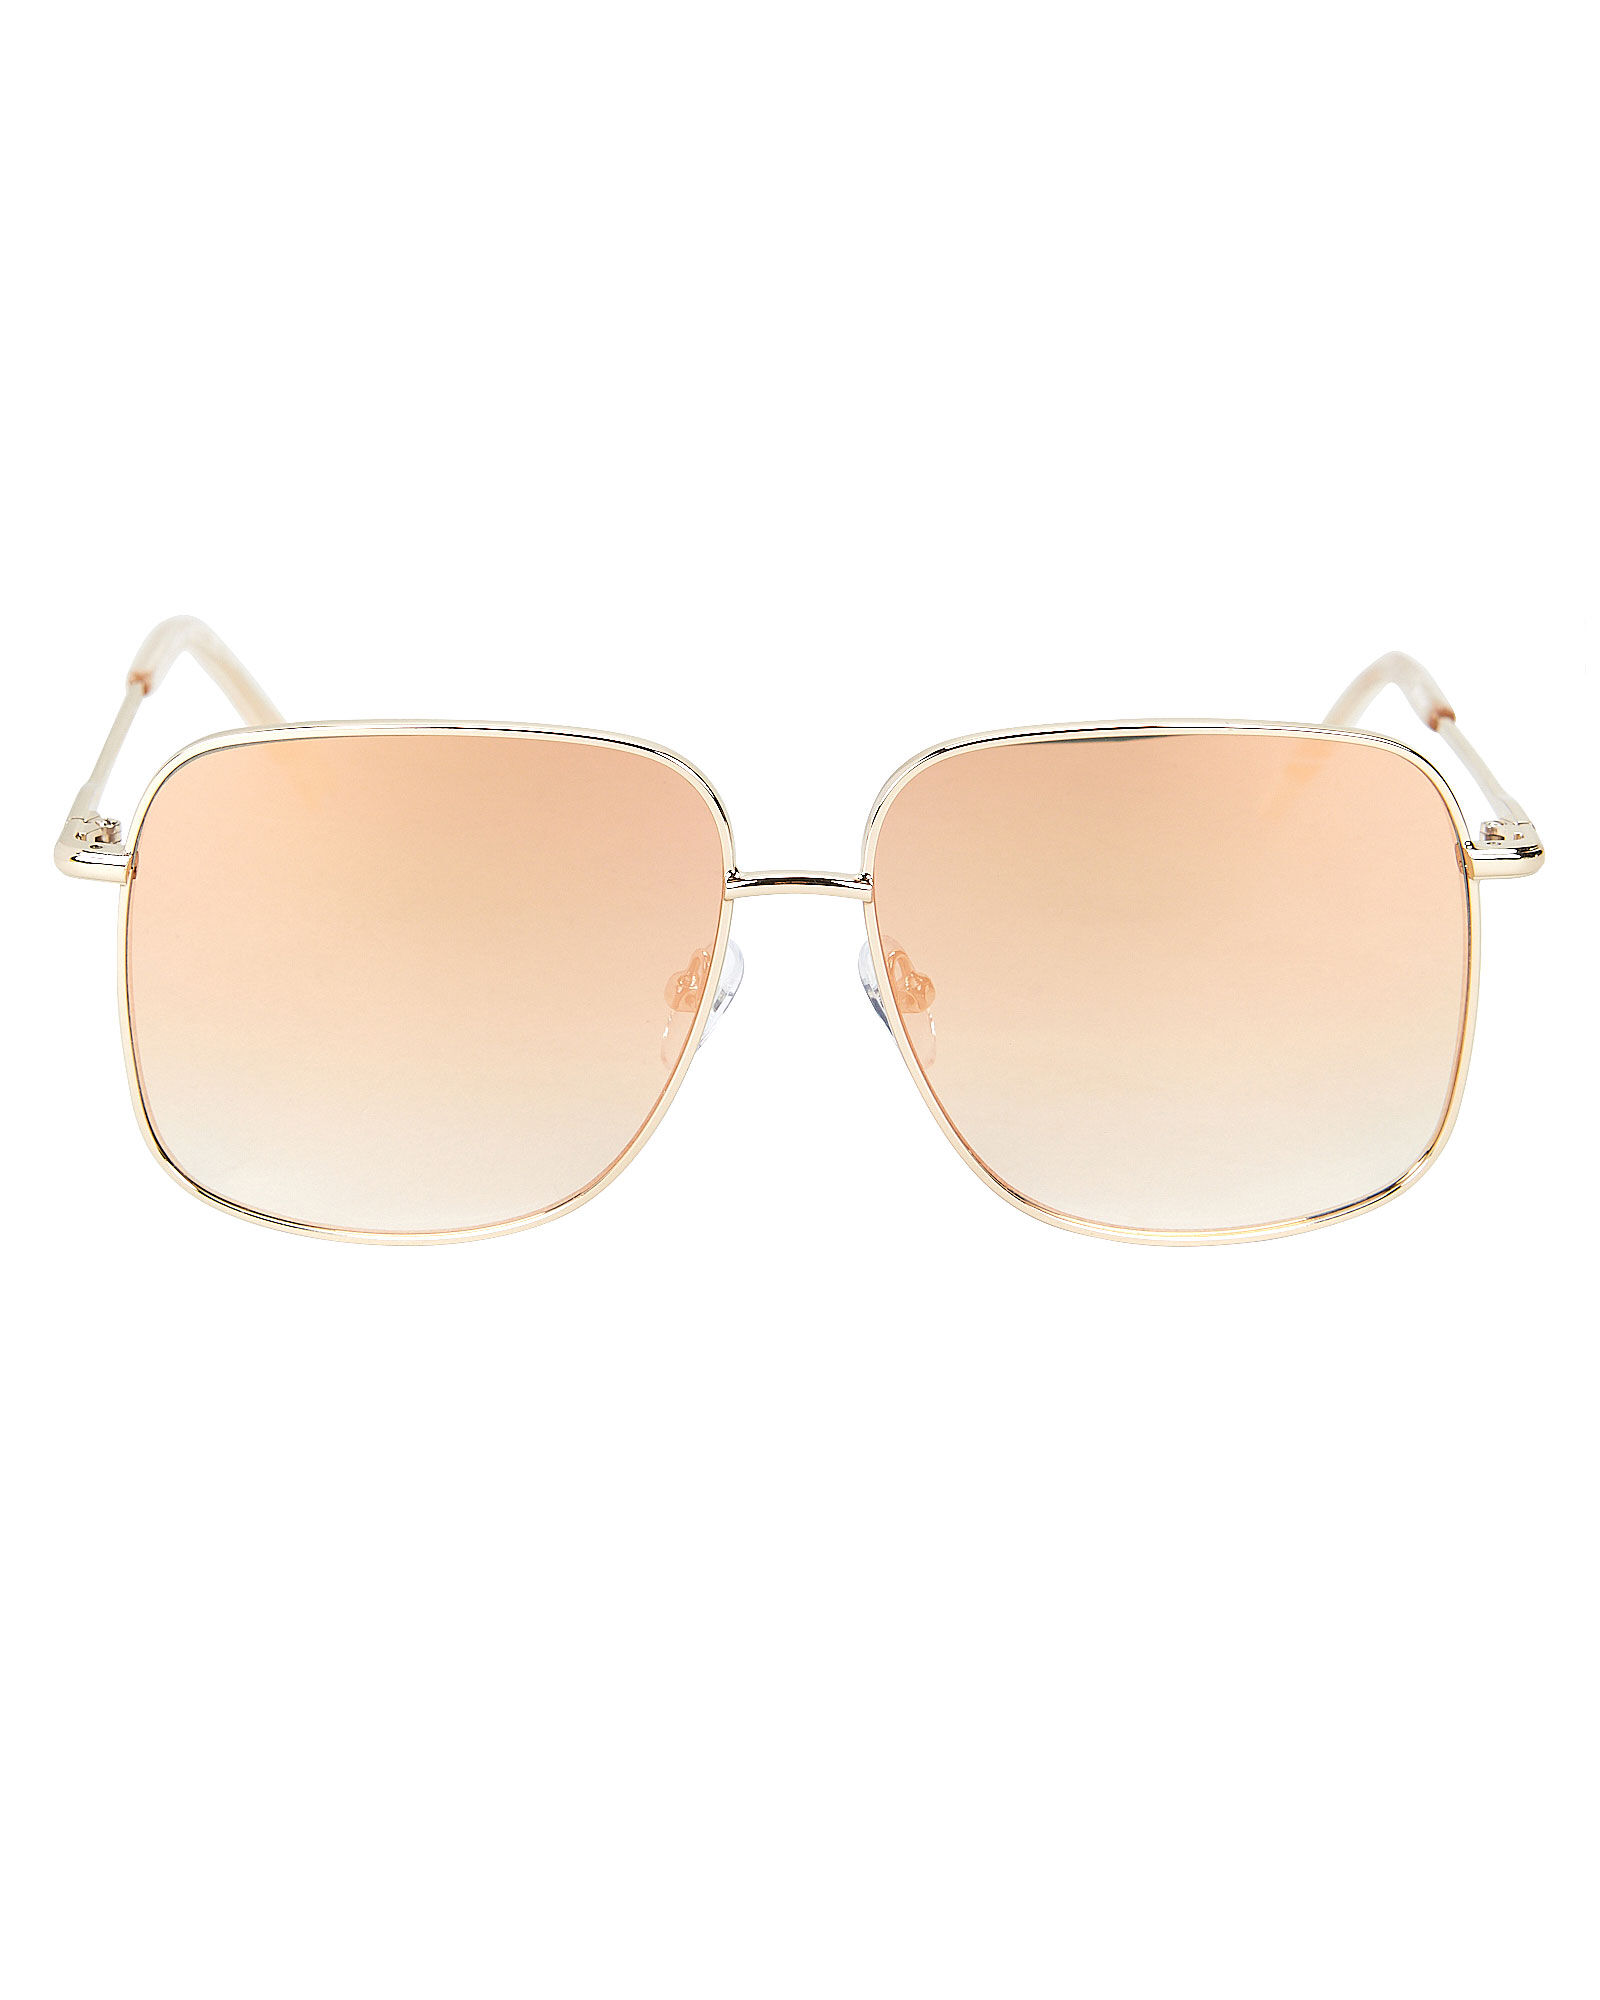 Equilibrium Oversized Square Sunglasses, GOLD, hi-res